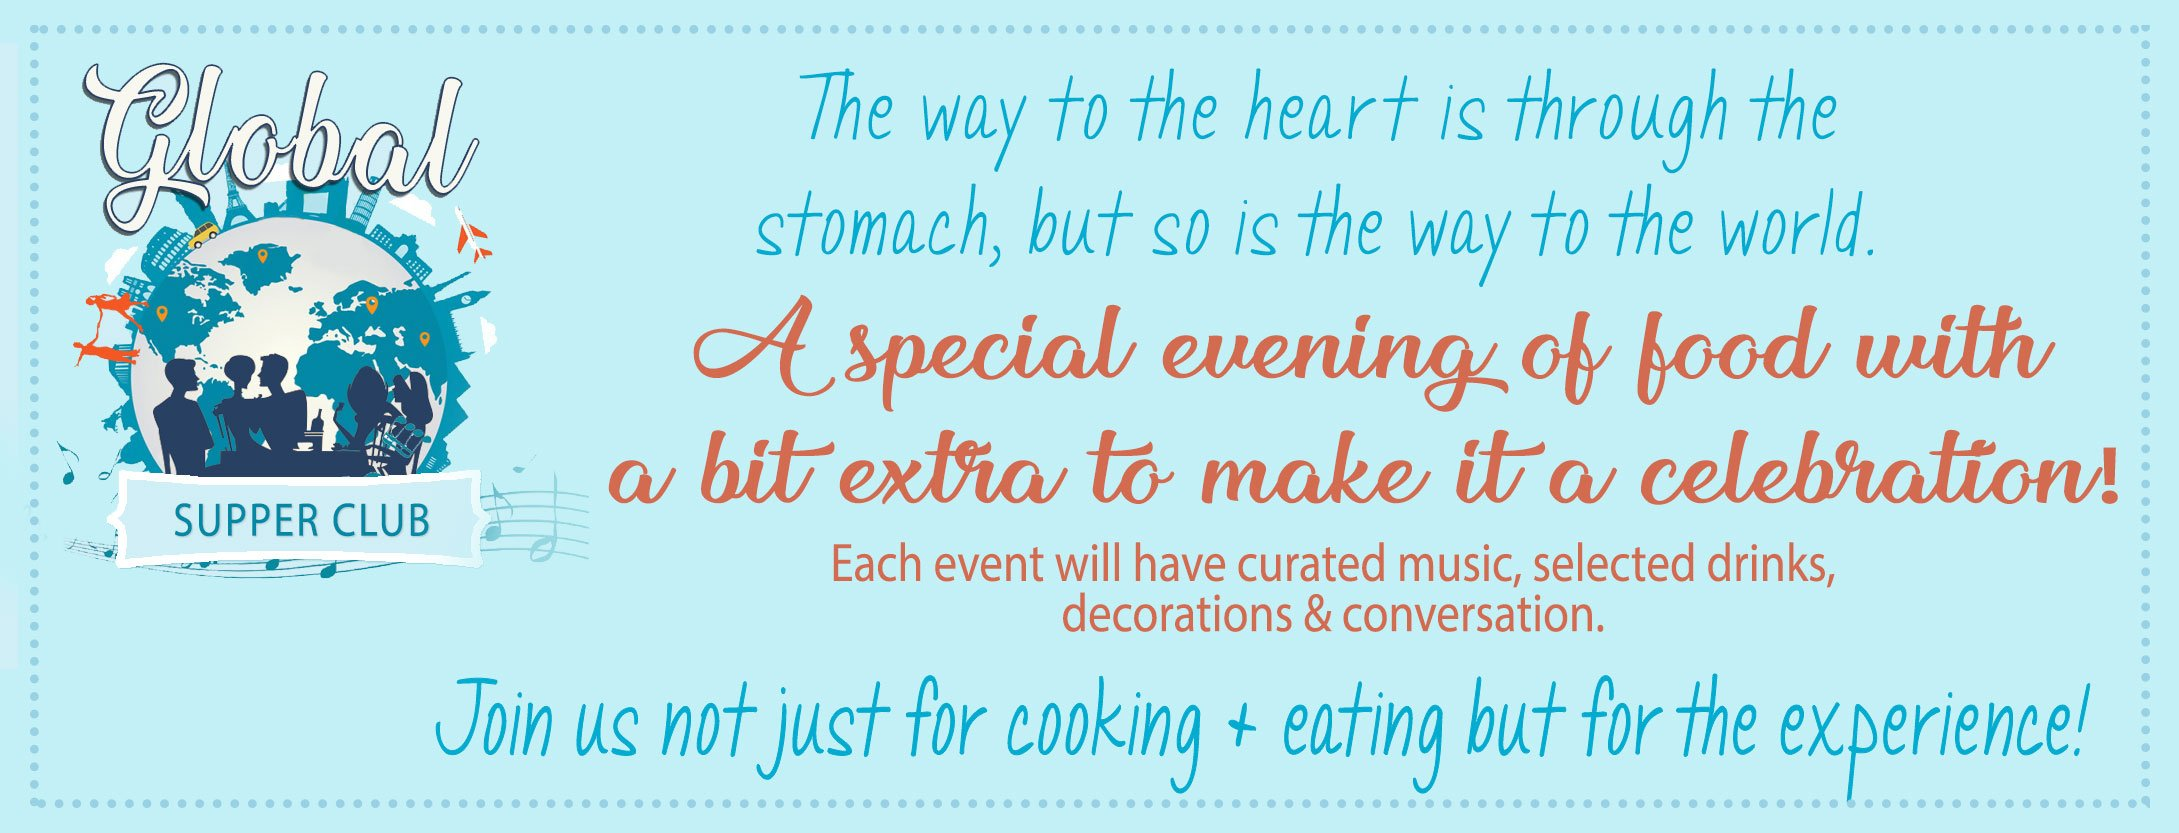 Special Event at Hipcooks